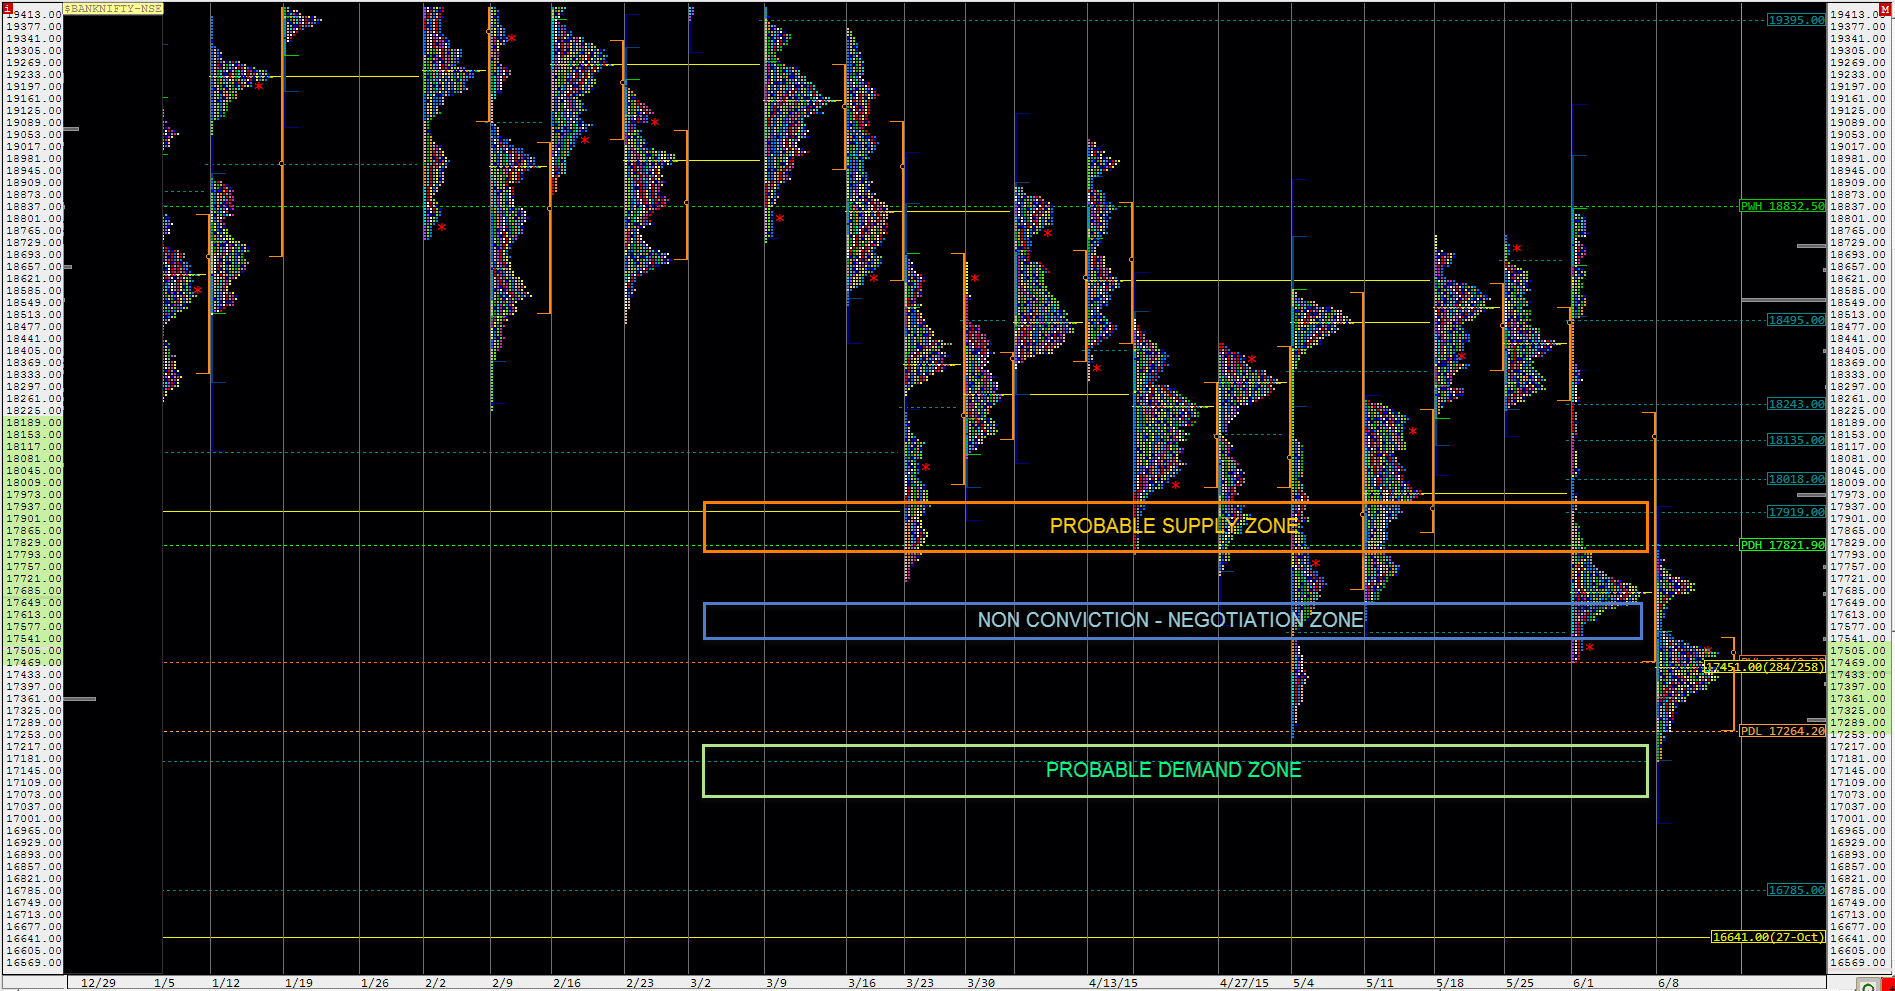 Bank Nifty Spot Week Composite Market Profile for the week ended 12-06-2015